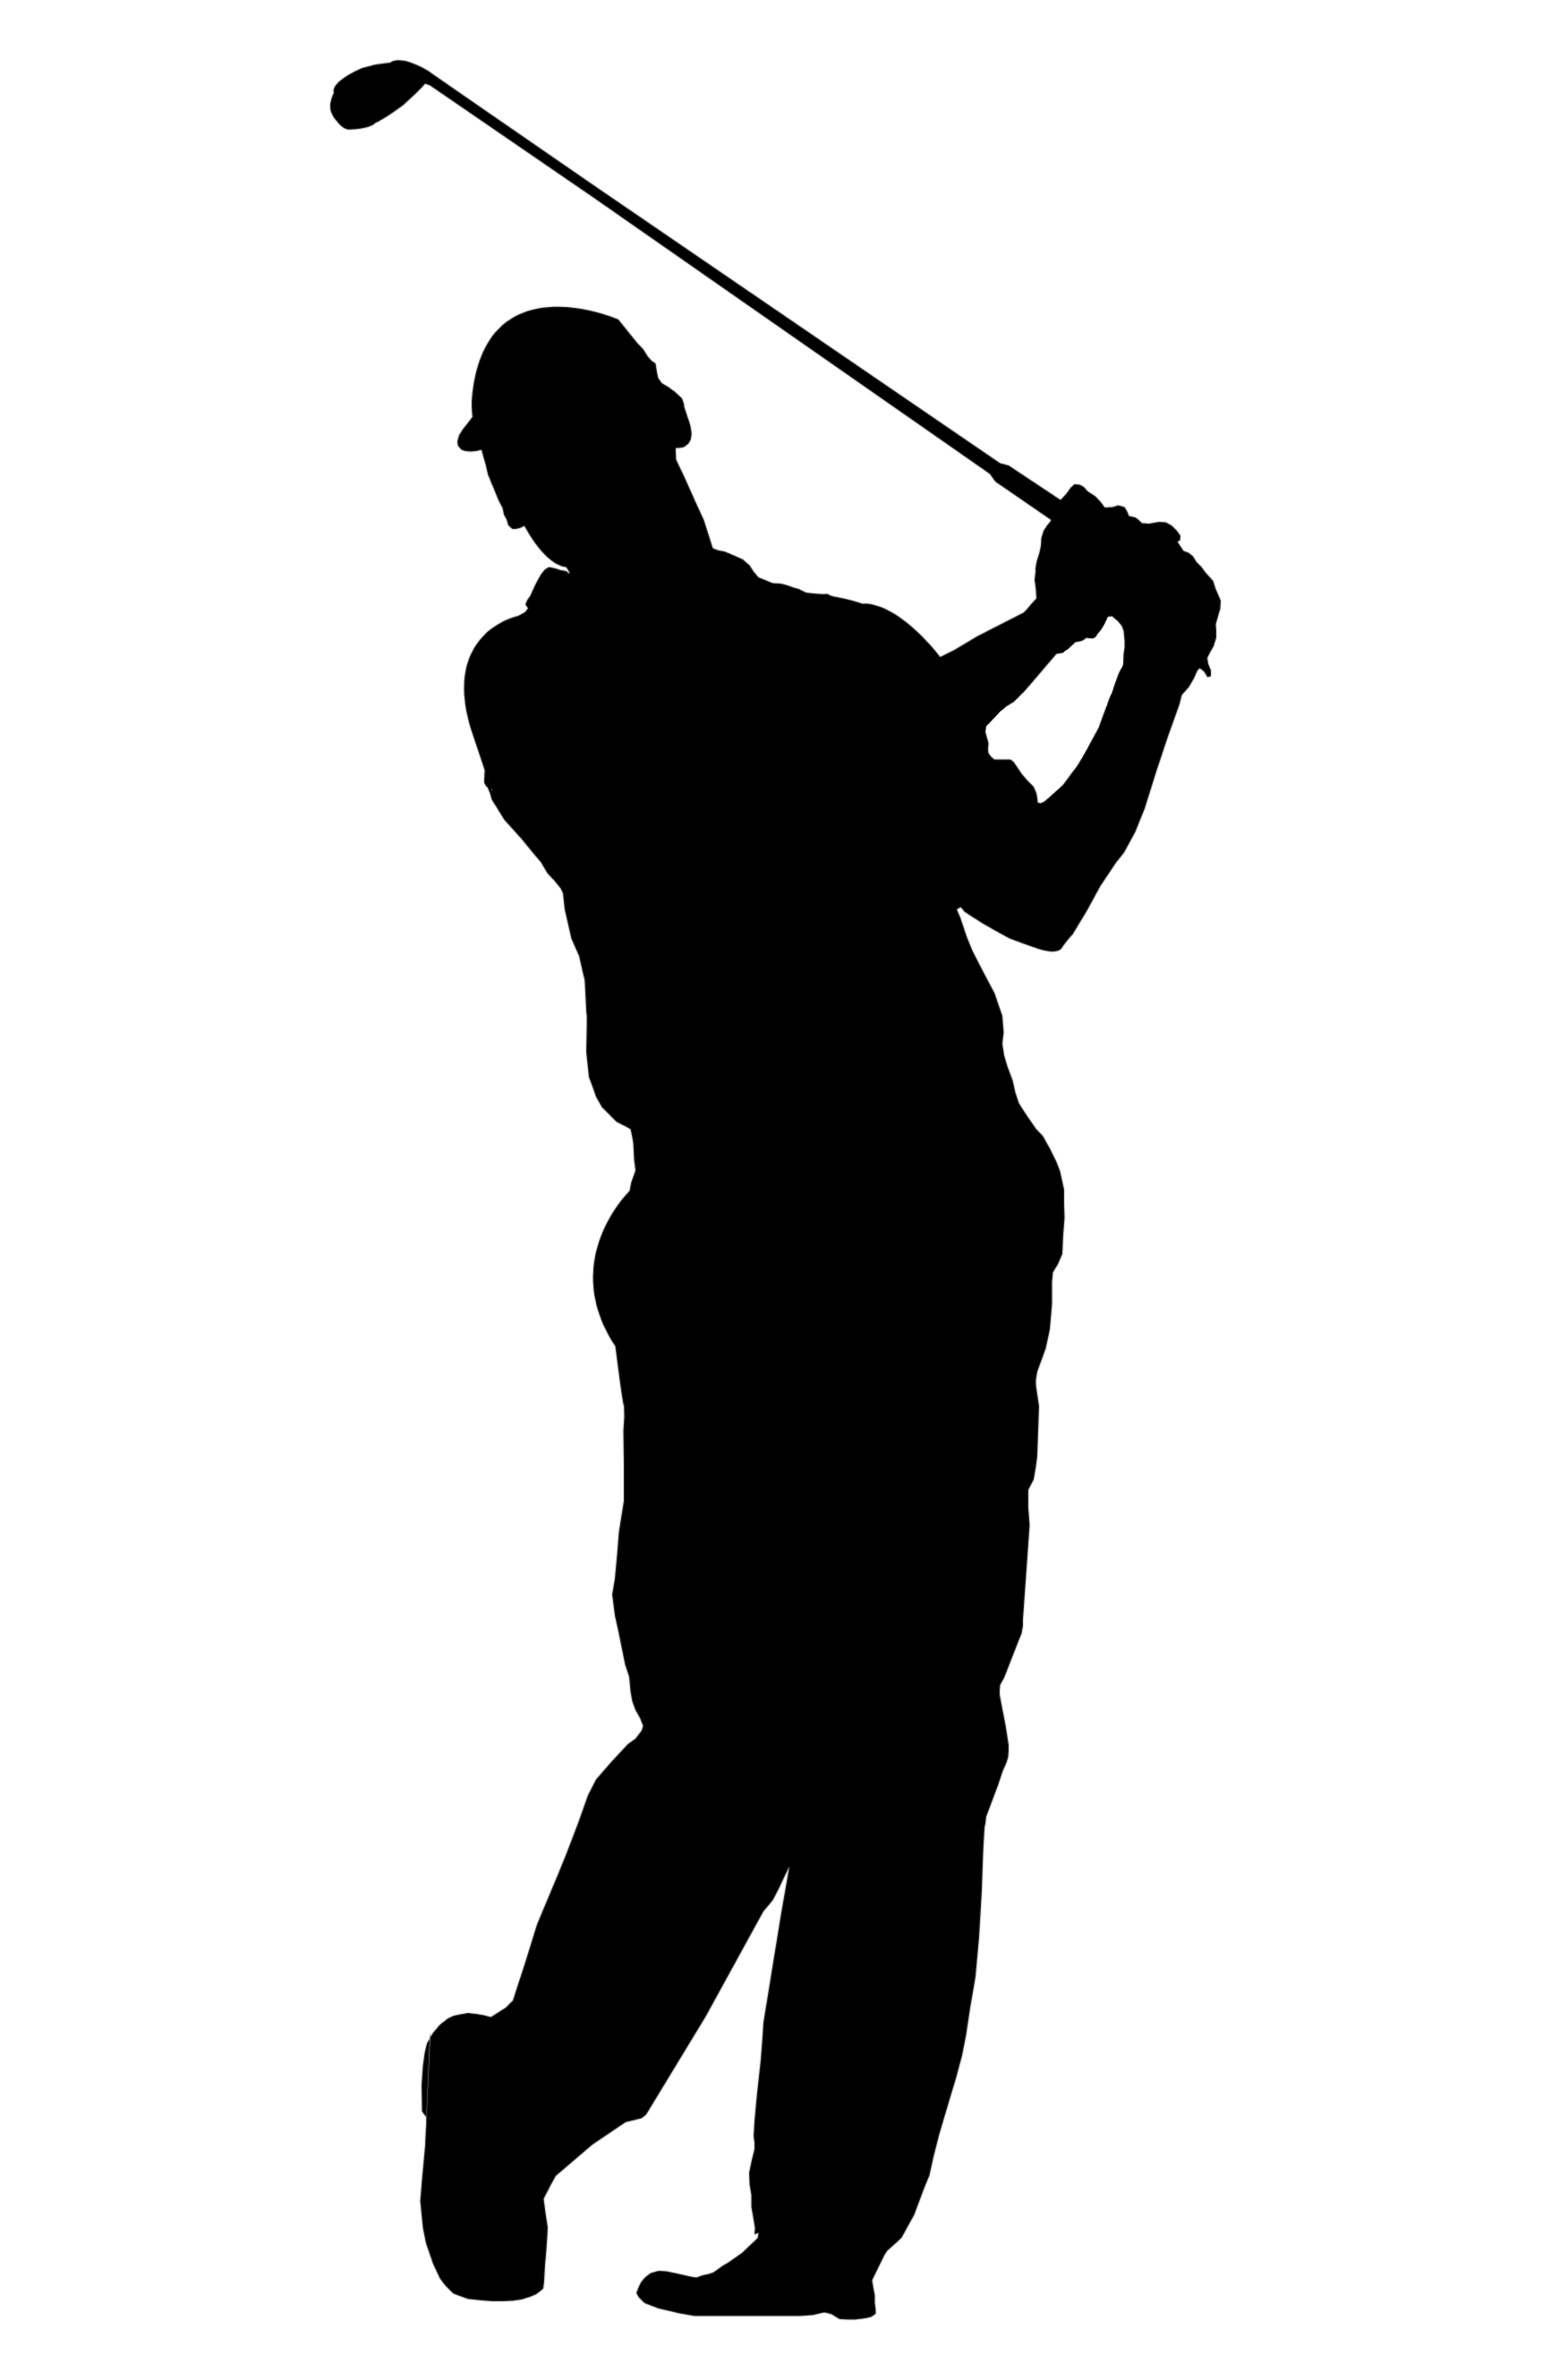 banner Golfer clipart. Free golf images graphics